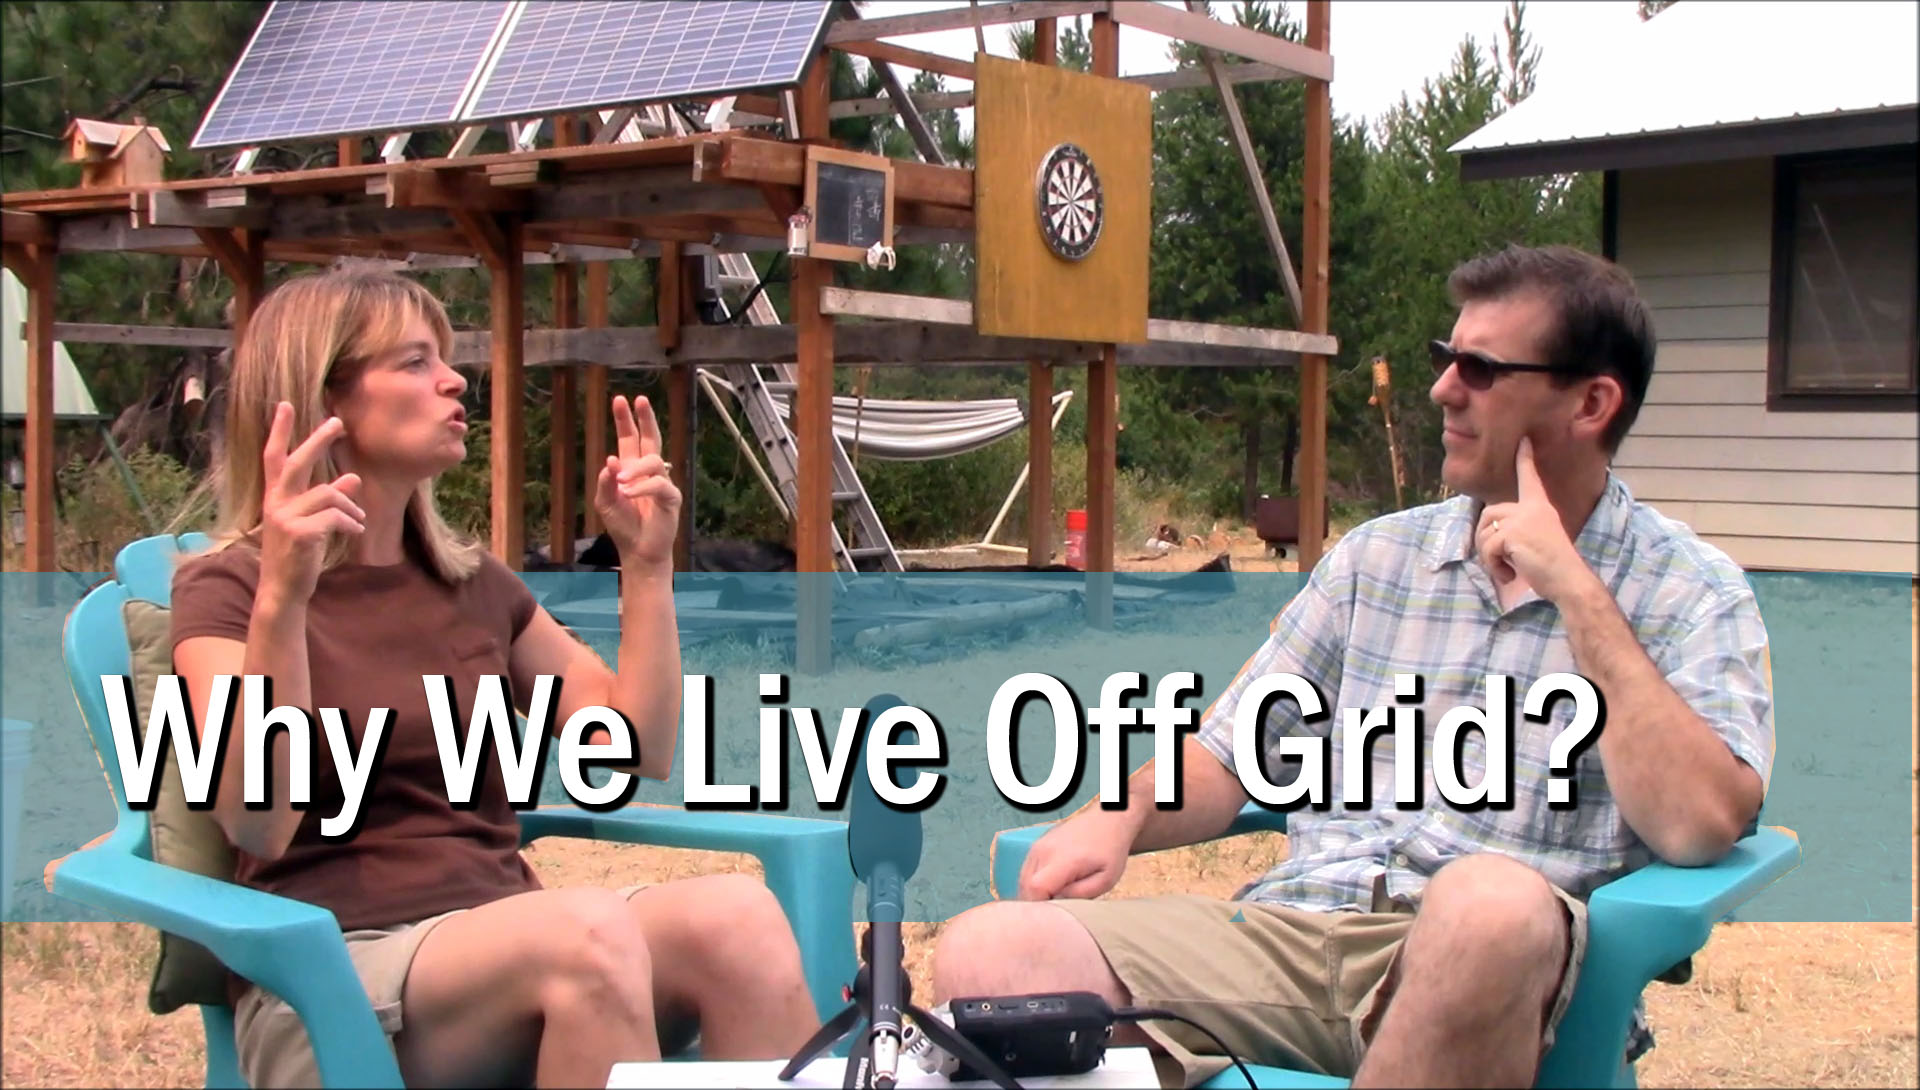 Why Live Off the Grid?